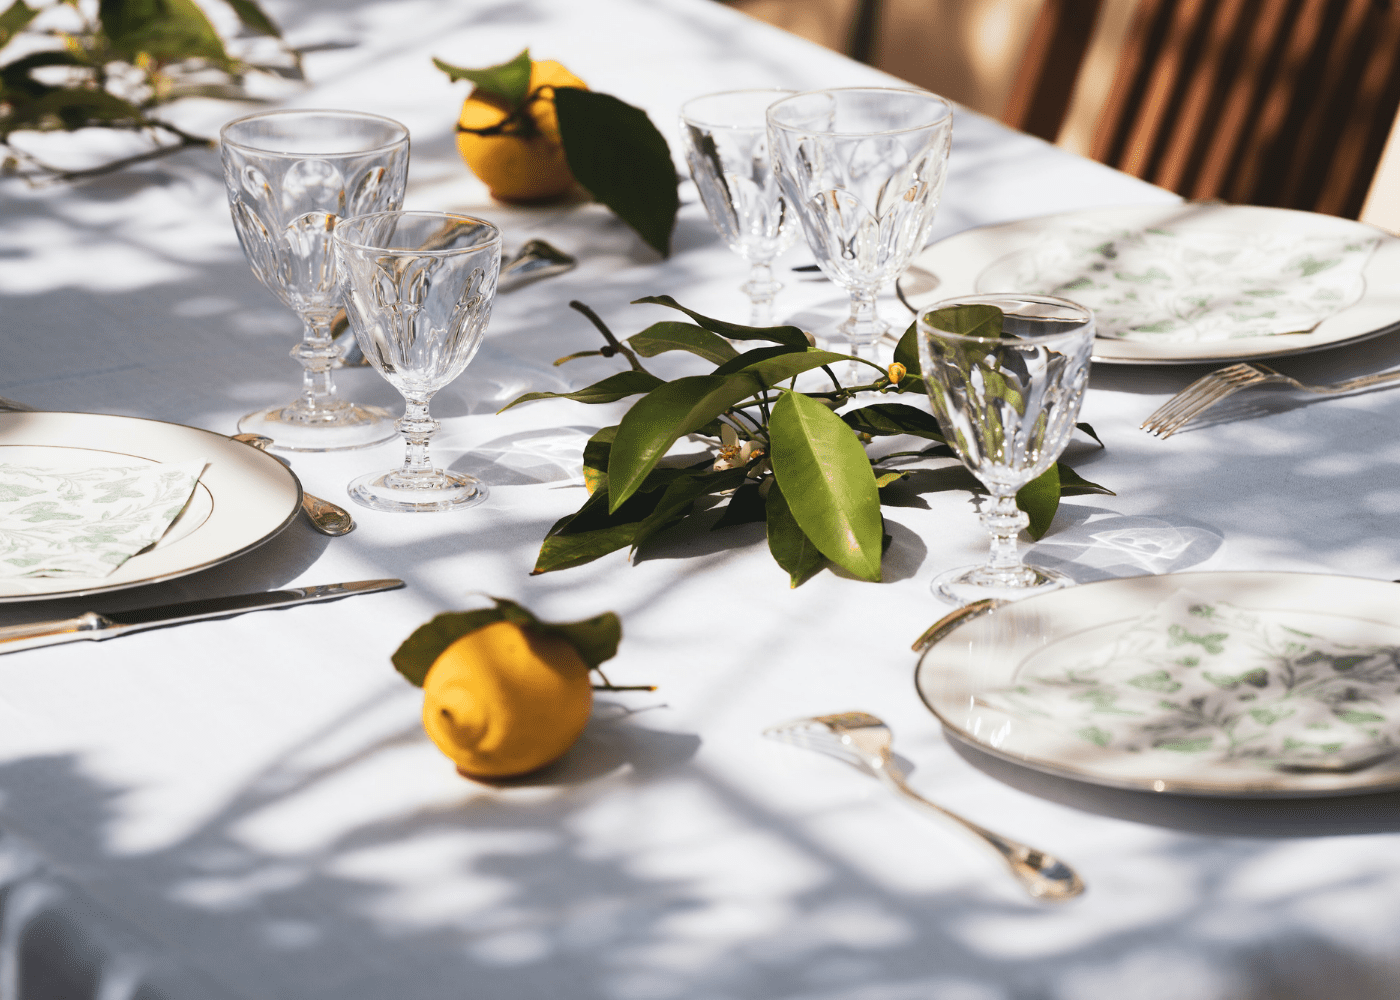 Best cutlery stores in Singapore for all your tableware needs